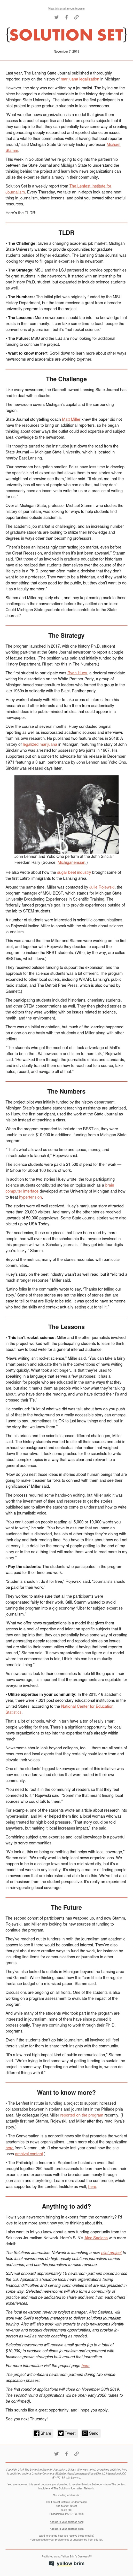 Solution Set: When Ph.D. students become local reporters